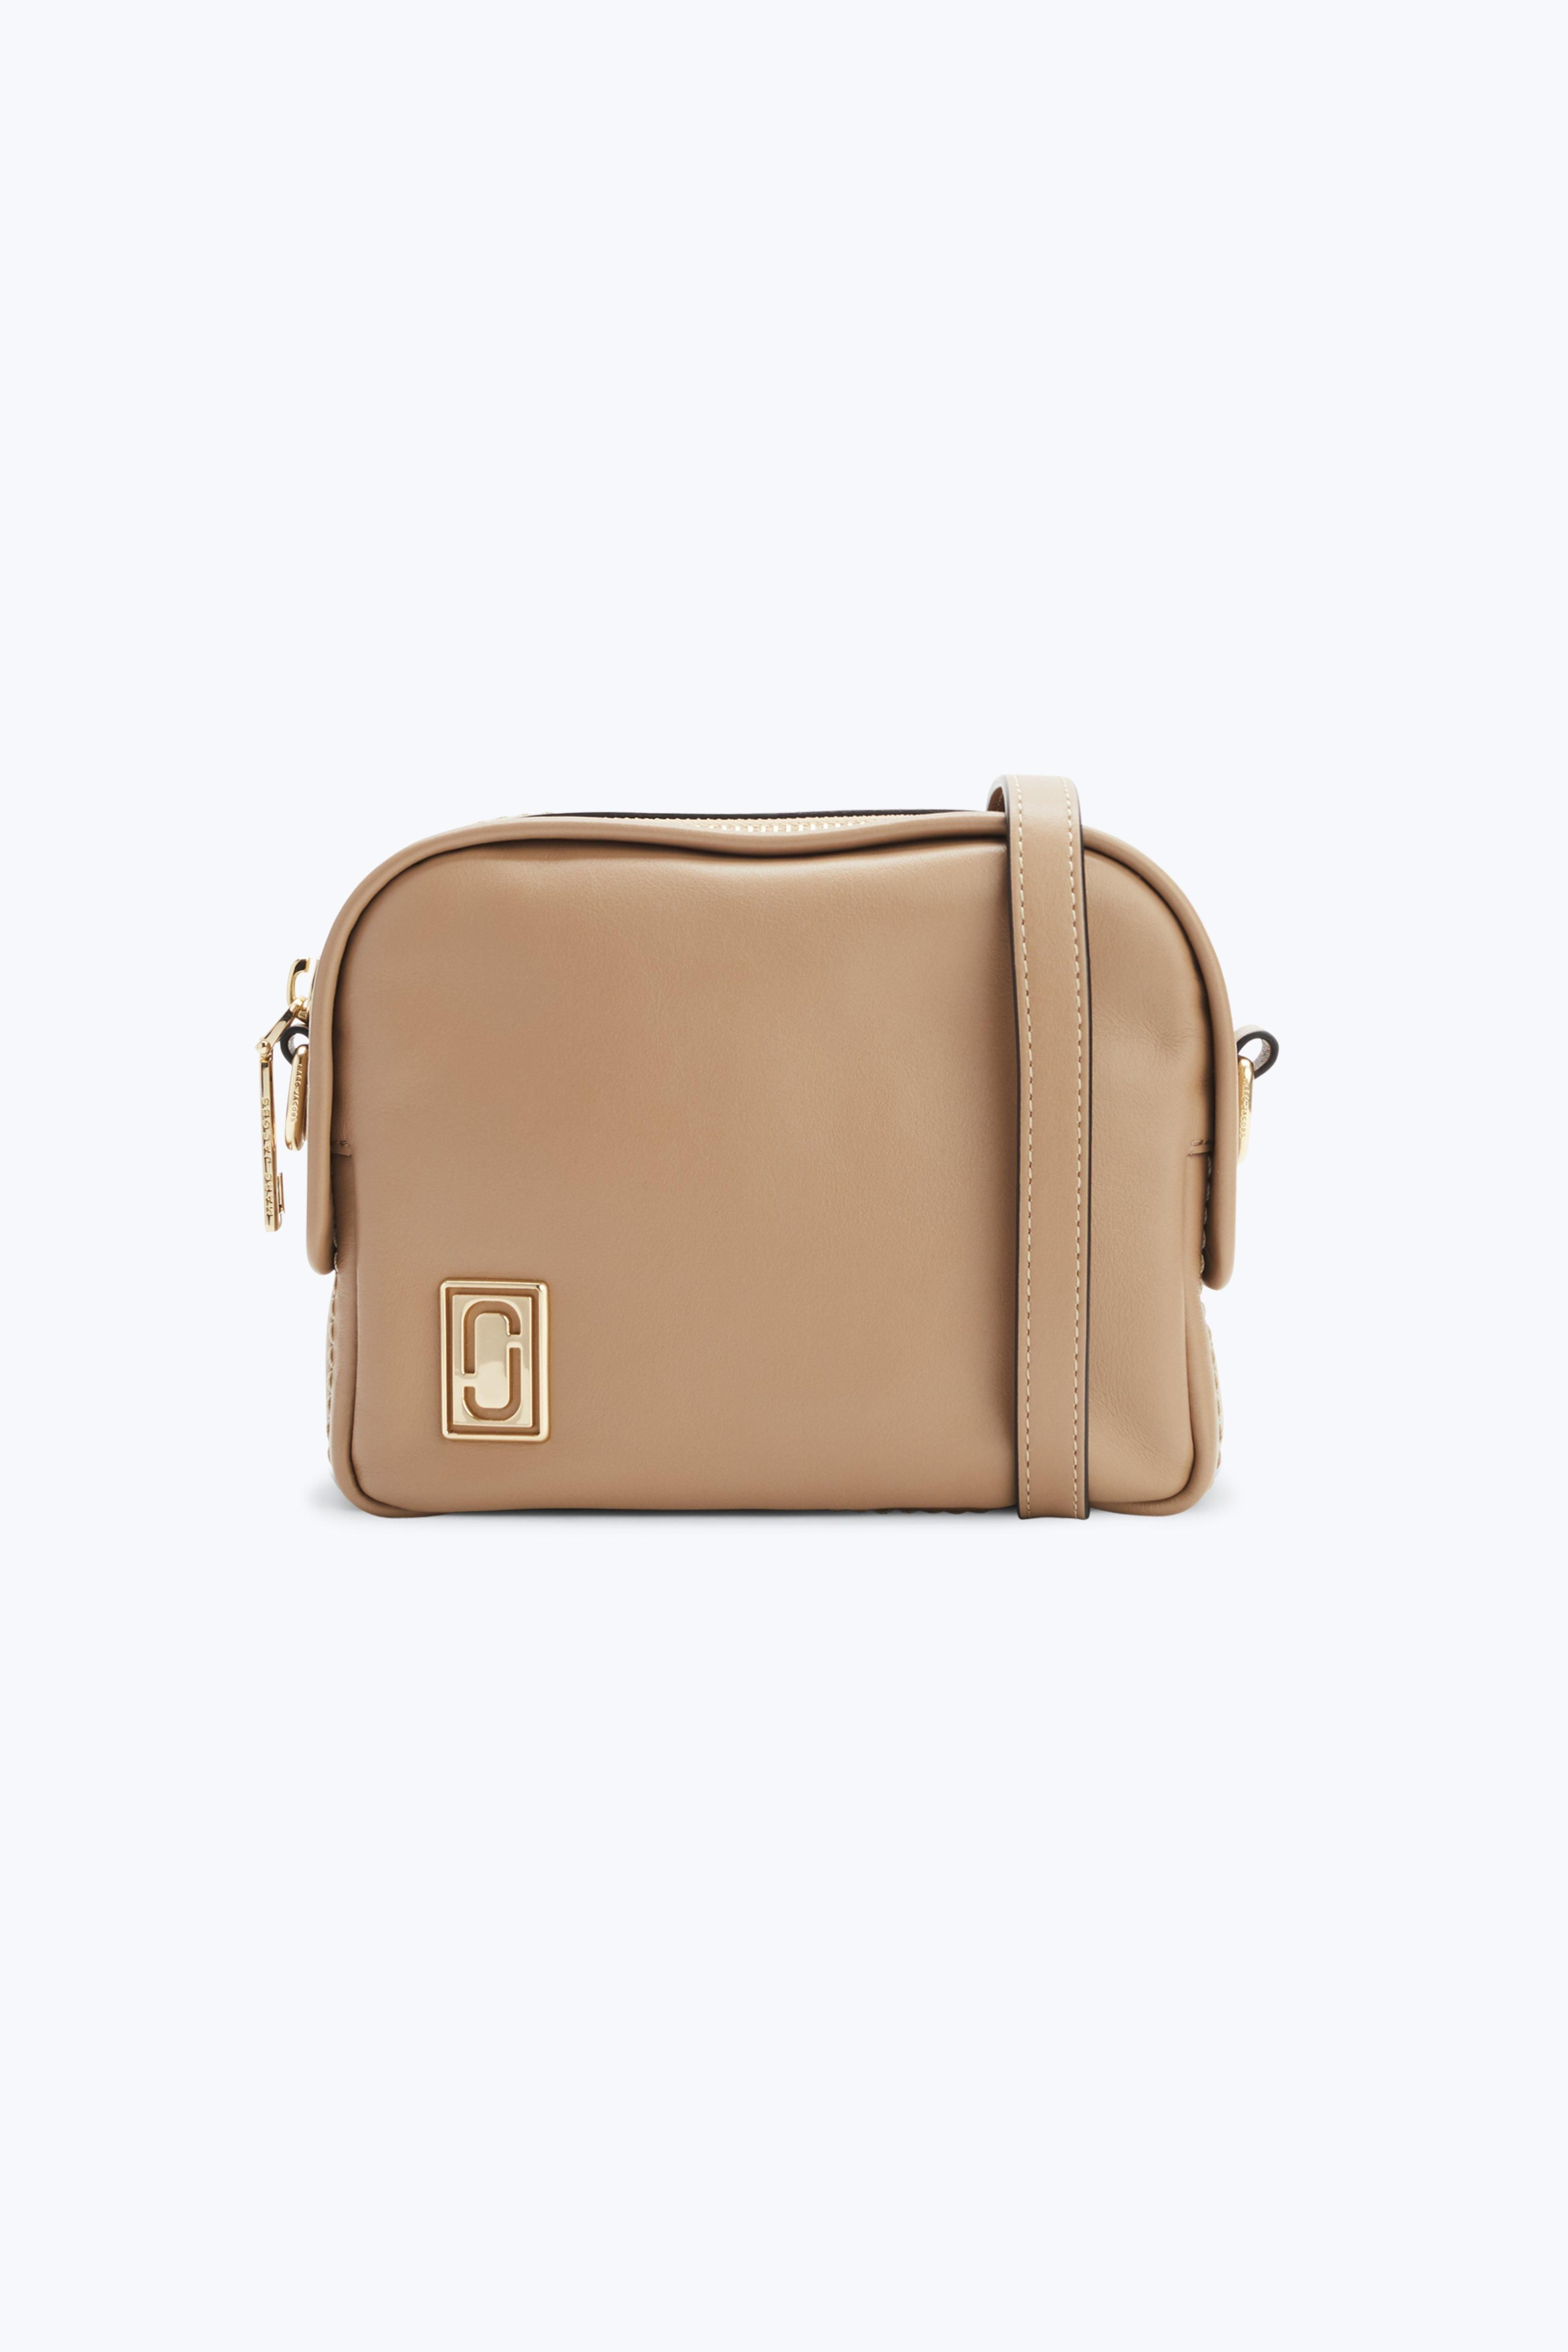 a3c11fb0bdcb MARC JACOBS The Mini Squeeze Bag.  marcjacobs  bags  shoulder bags  leather   crossbody